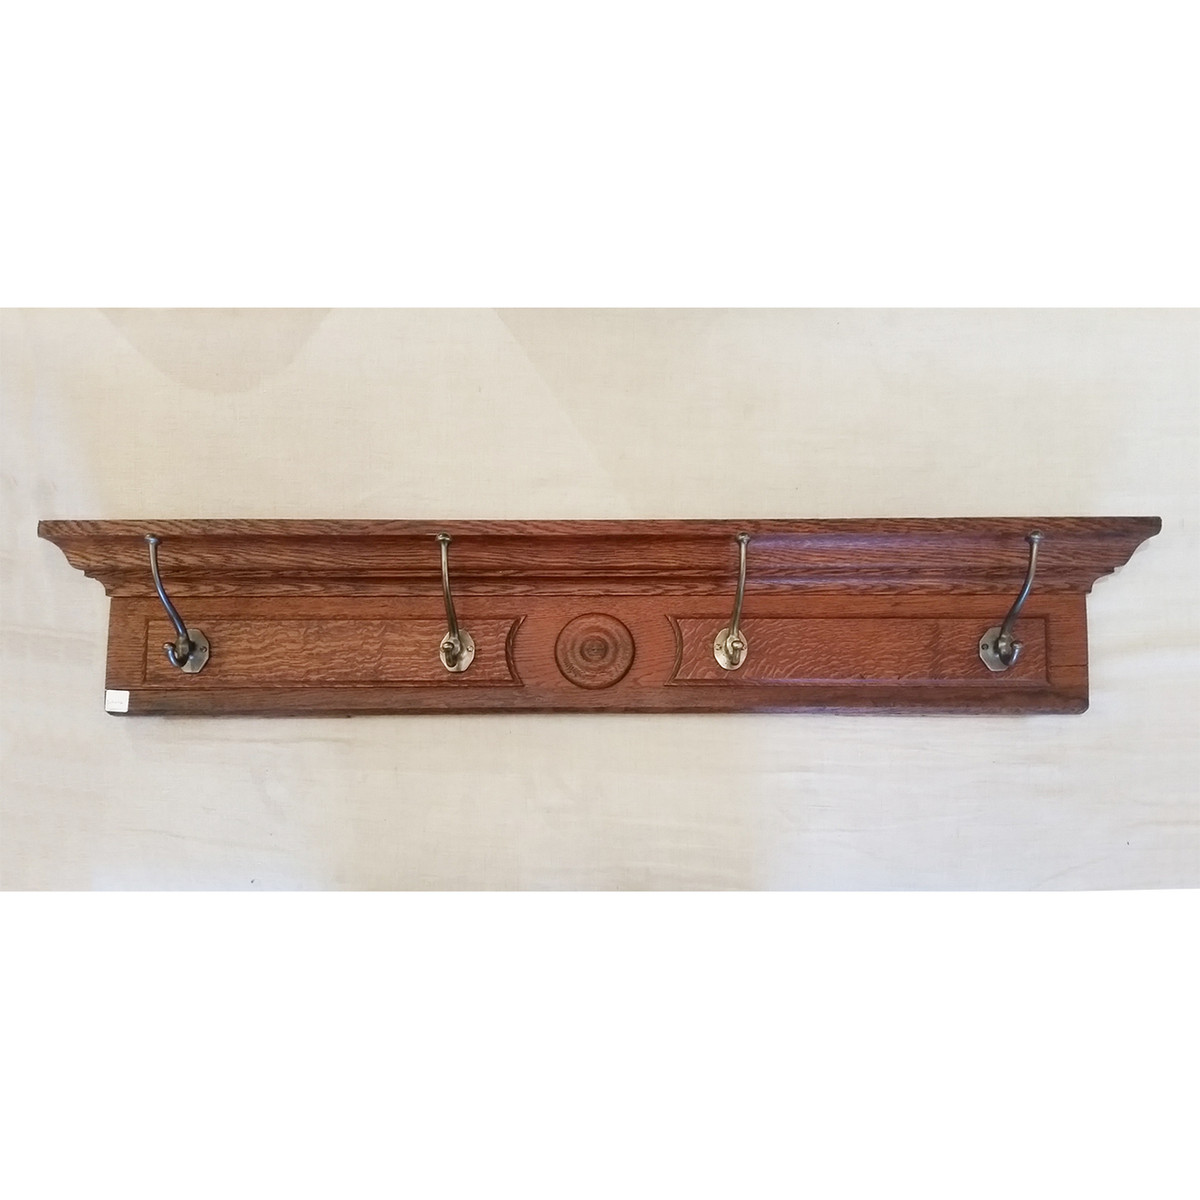 S19006 - Antique Door Header With Antique Hooks